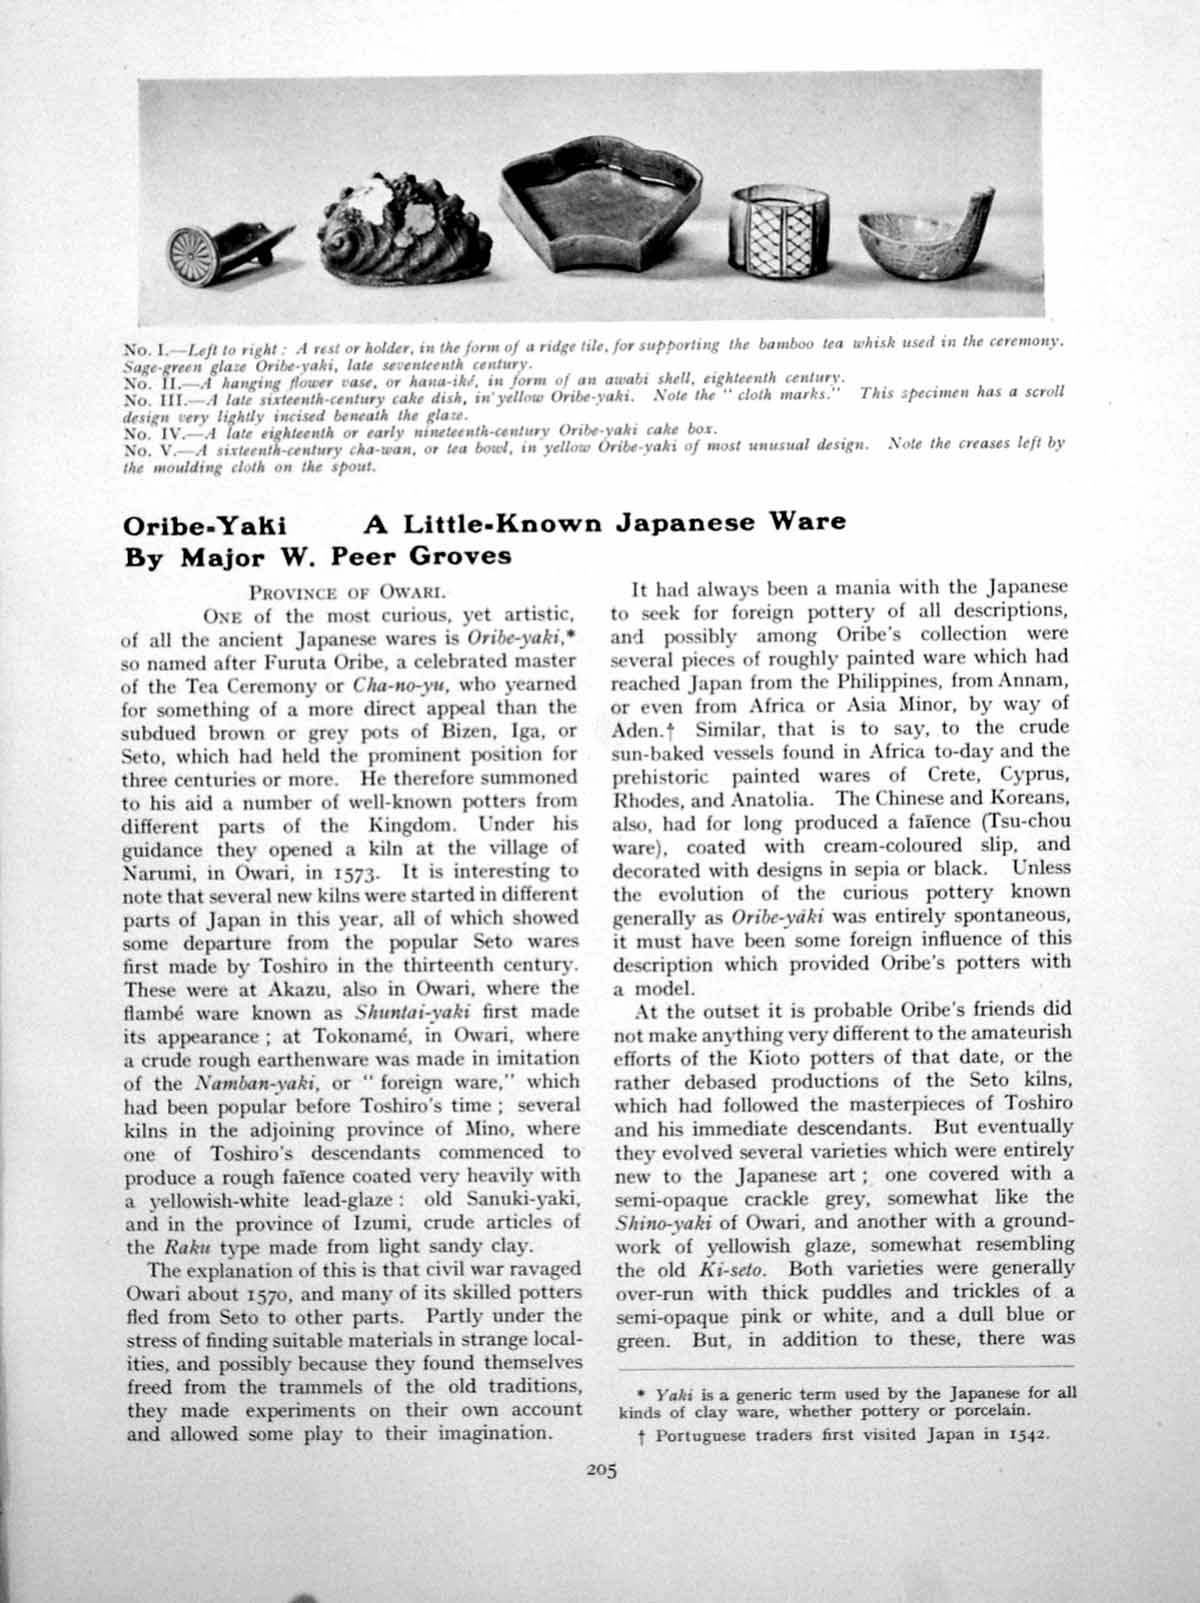 Old-Print-Oribe-Yaki-Little-Known-Japanese-Ware-Tea-CeremonyPages-1927